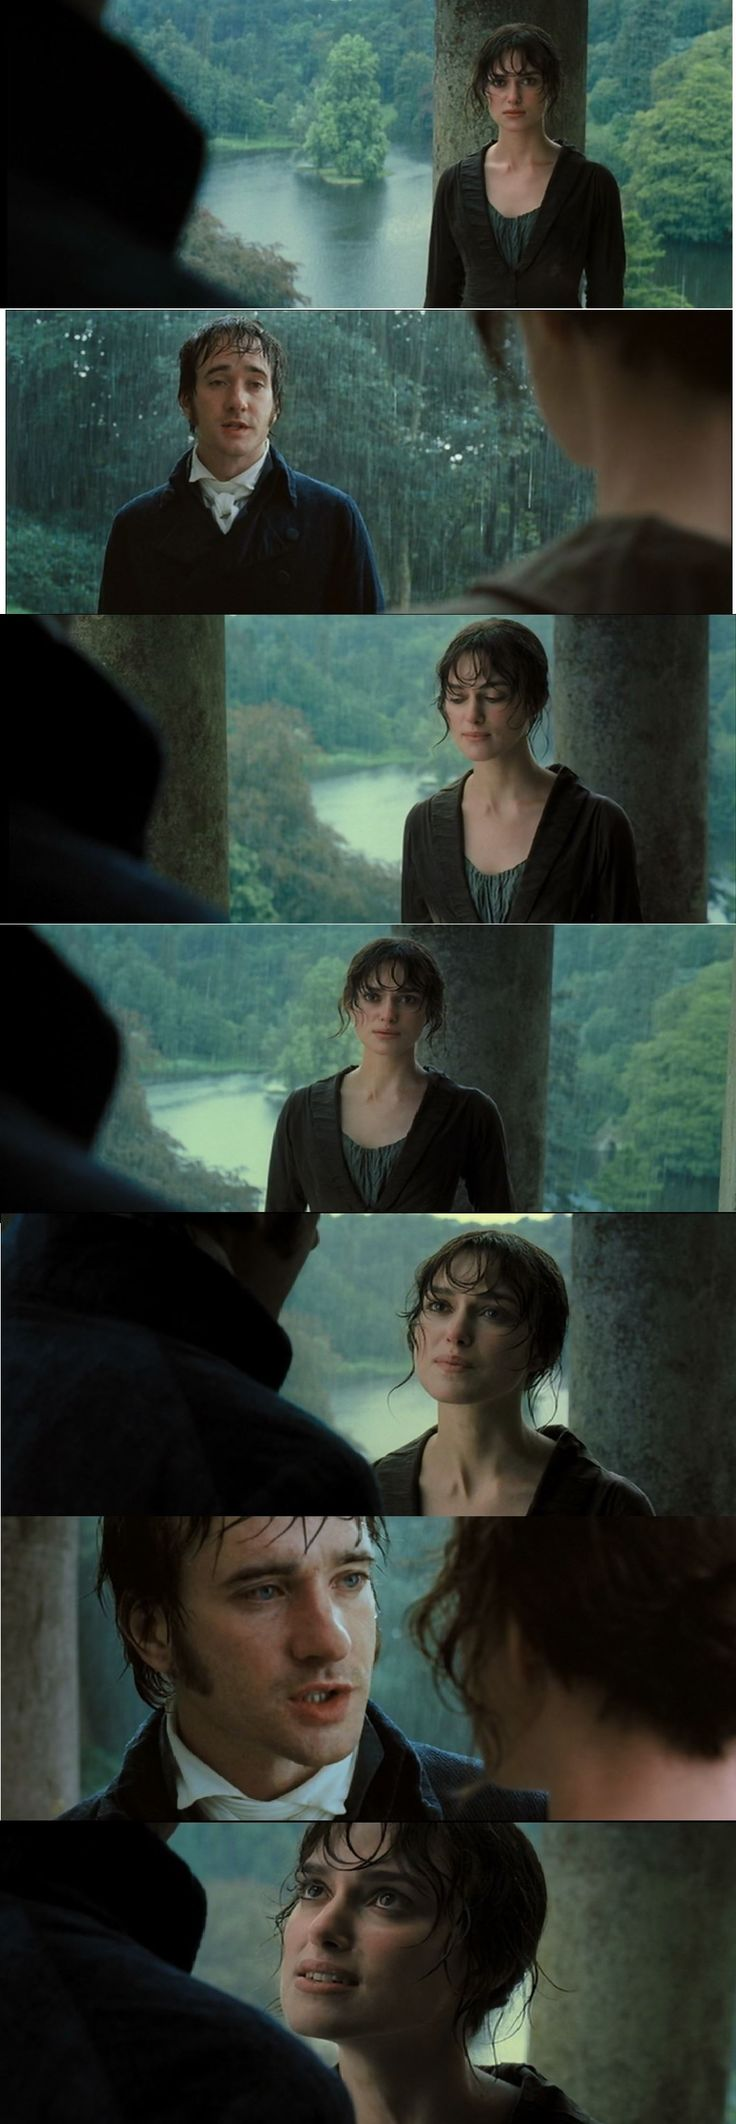 Pride and Prejudice 2005 Mr. Darcy declares his love for Elizabeth Bennett, going against his prejudice toward the inferiority of her birth and connections. He just can't control his impulses any longer. This scene will appear in chapter 34 of the novel albeit without the rain, and it takes place in Mrs. Collins' cottage. This setting, however, with the rain in the background makes the scene more romantic and more poetic. The copious rain effectively symbolizes the mood of the characters.